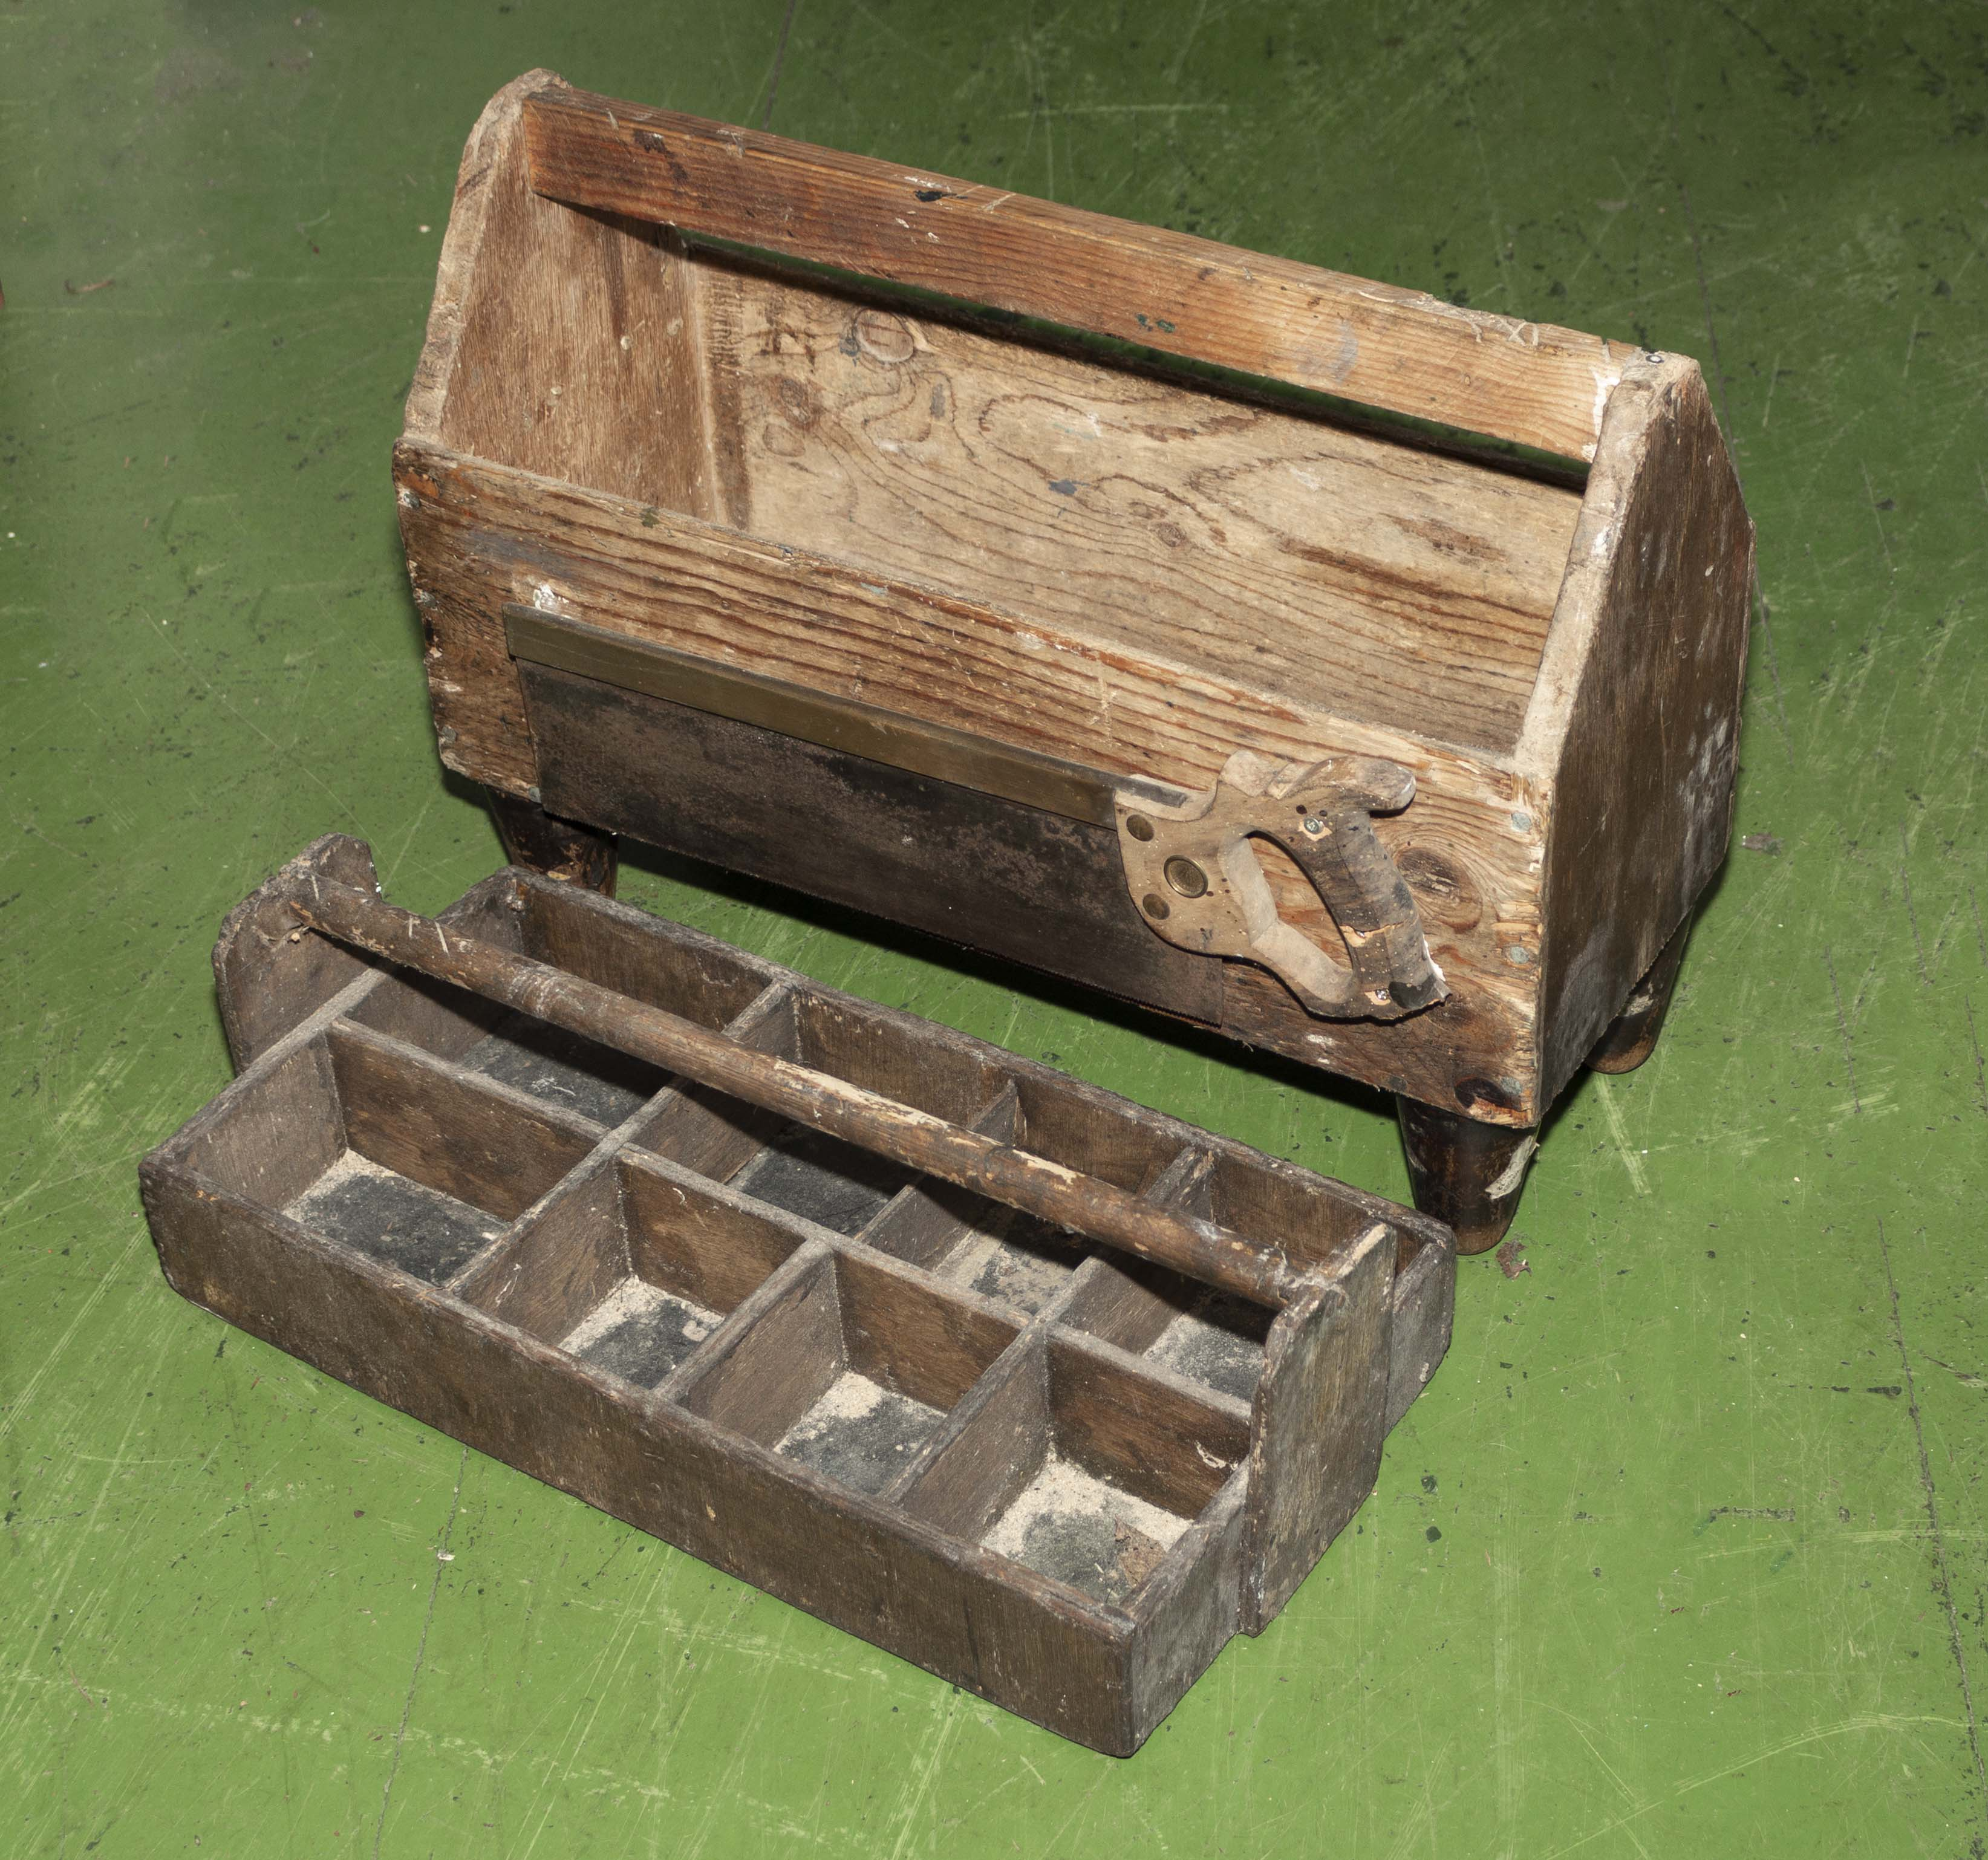 Lot 17 - Vintage wooden tool boxes